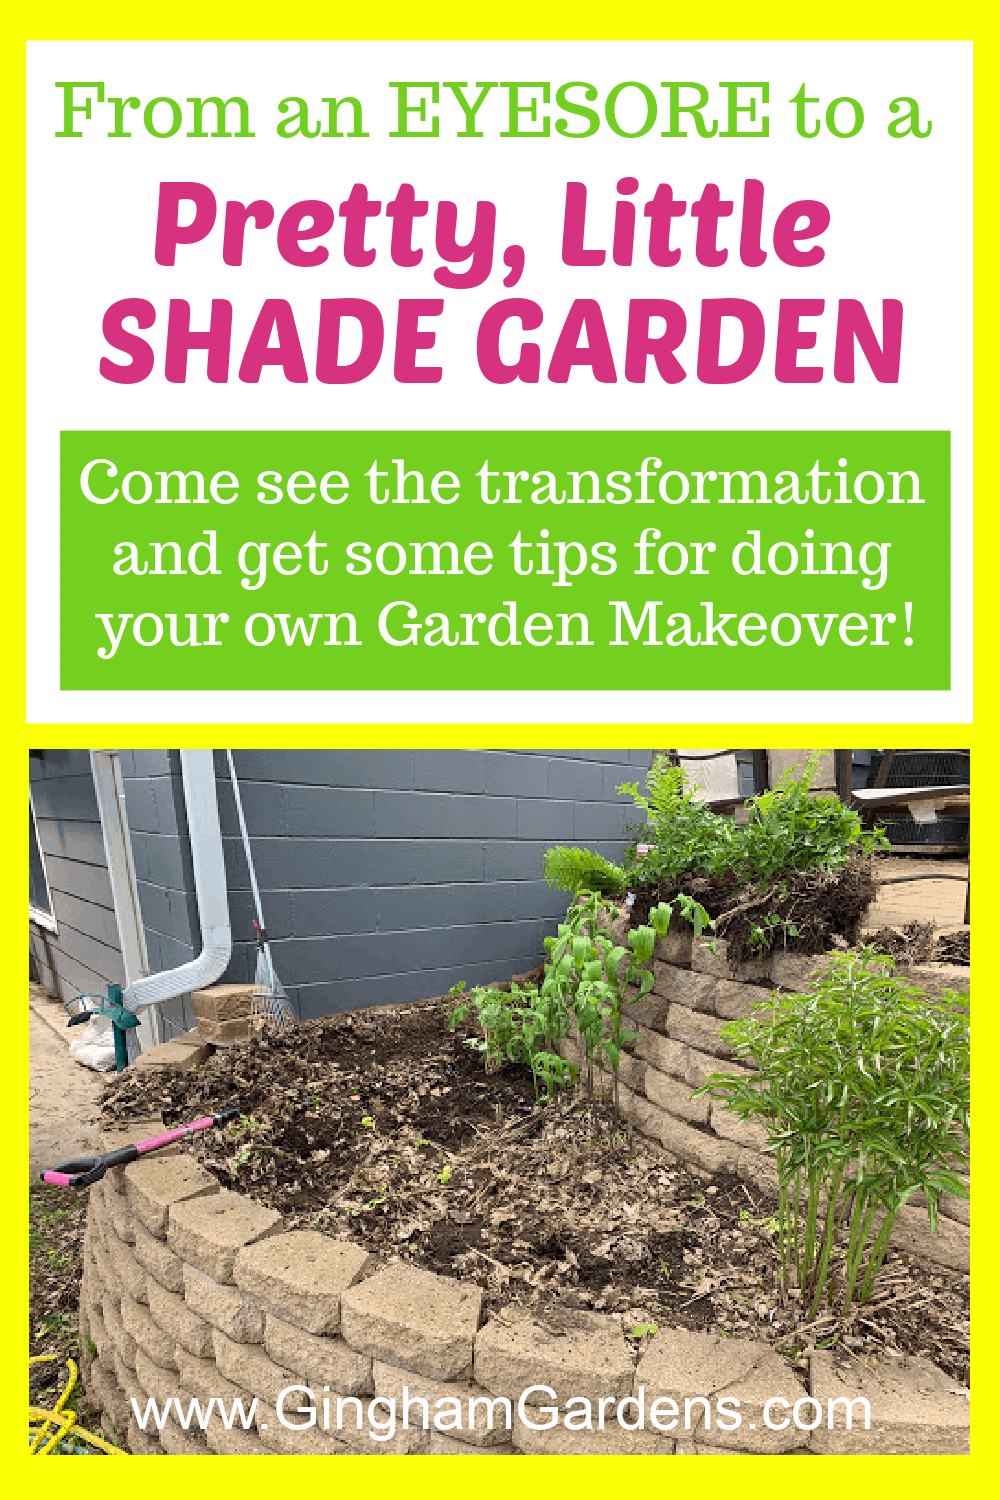 Image of a garden project with text overlay - From an eyesore to a pretty little shade garden